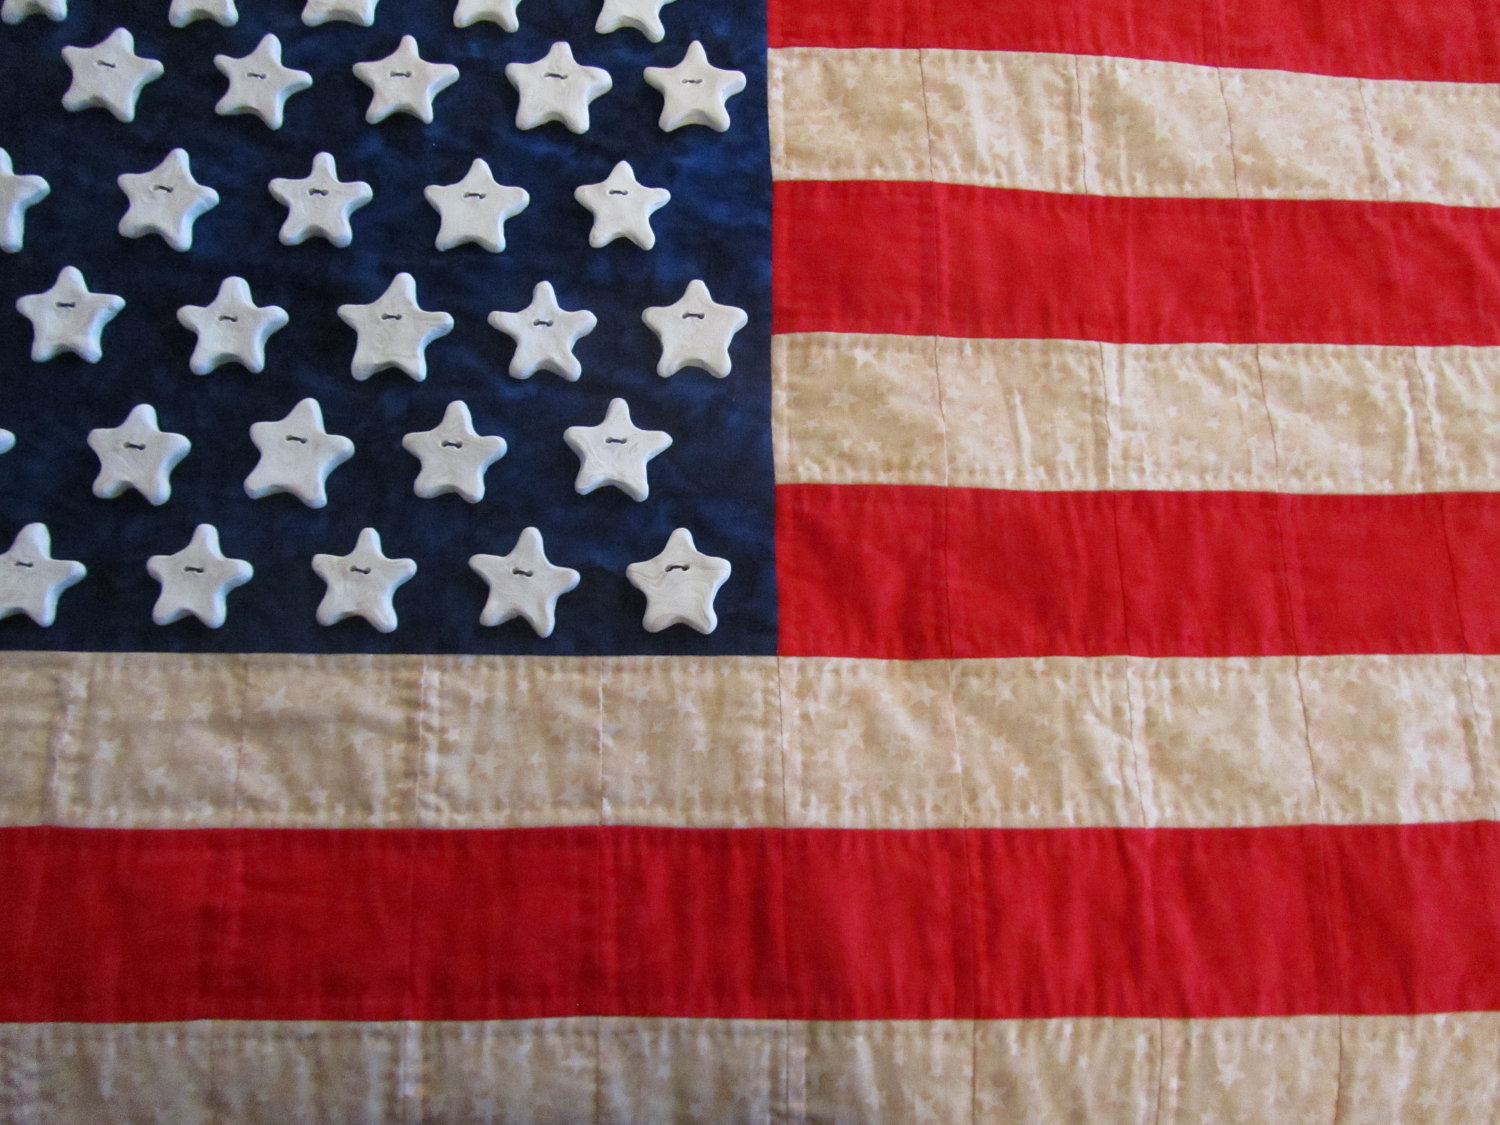 Flag Quilted Heirloom Primitive Wall hanging OOAK hand made 1500x1125